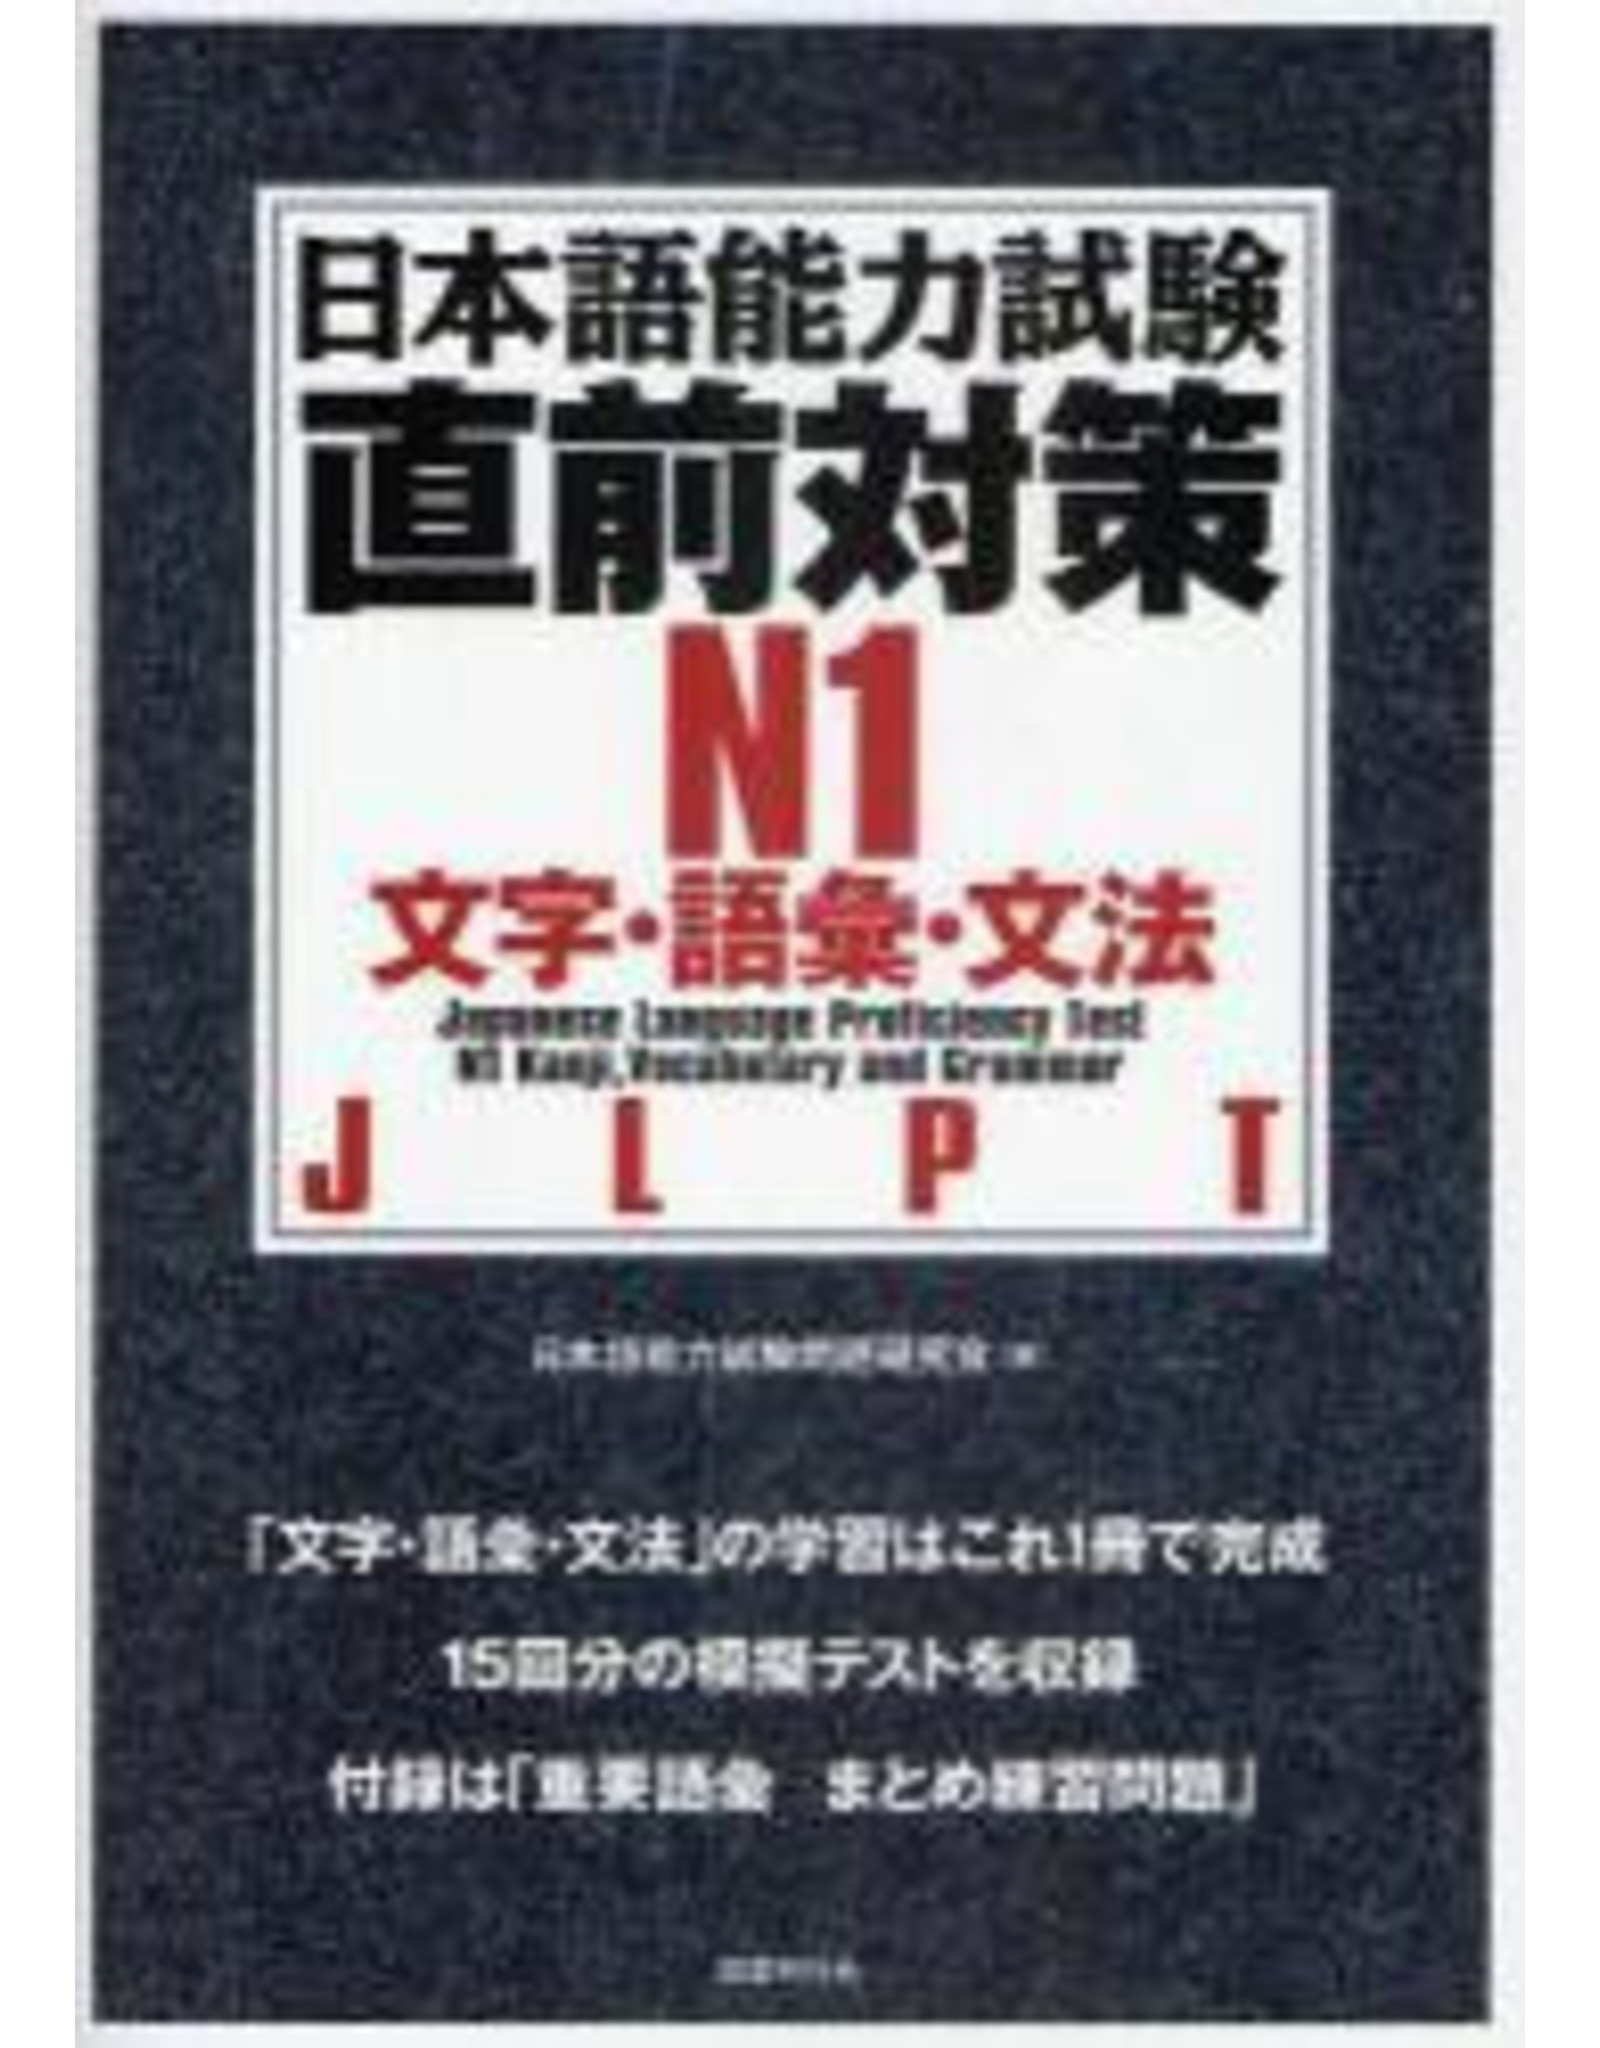 KOKUSHO KANKOKAI JLPT N1 KANJI, VOCABULARY AND GRAMMAR